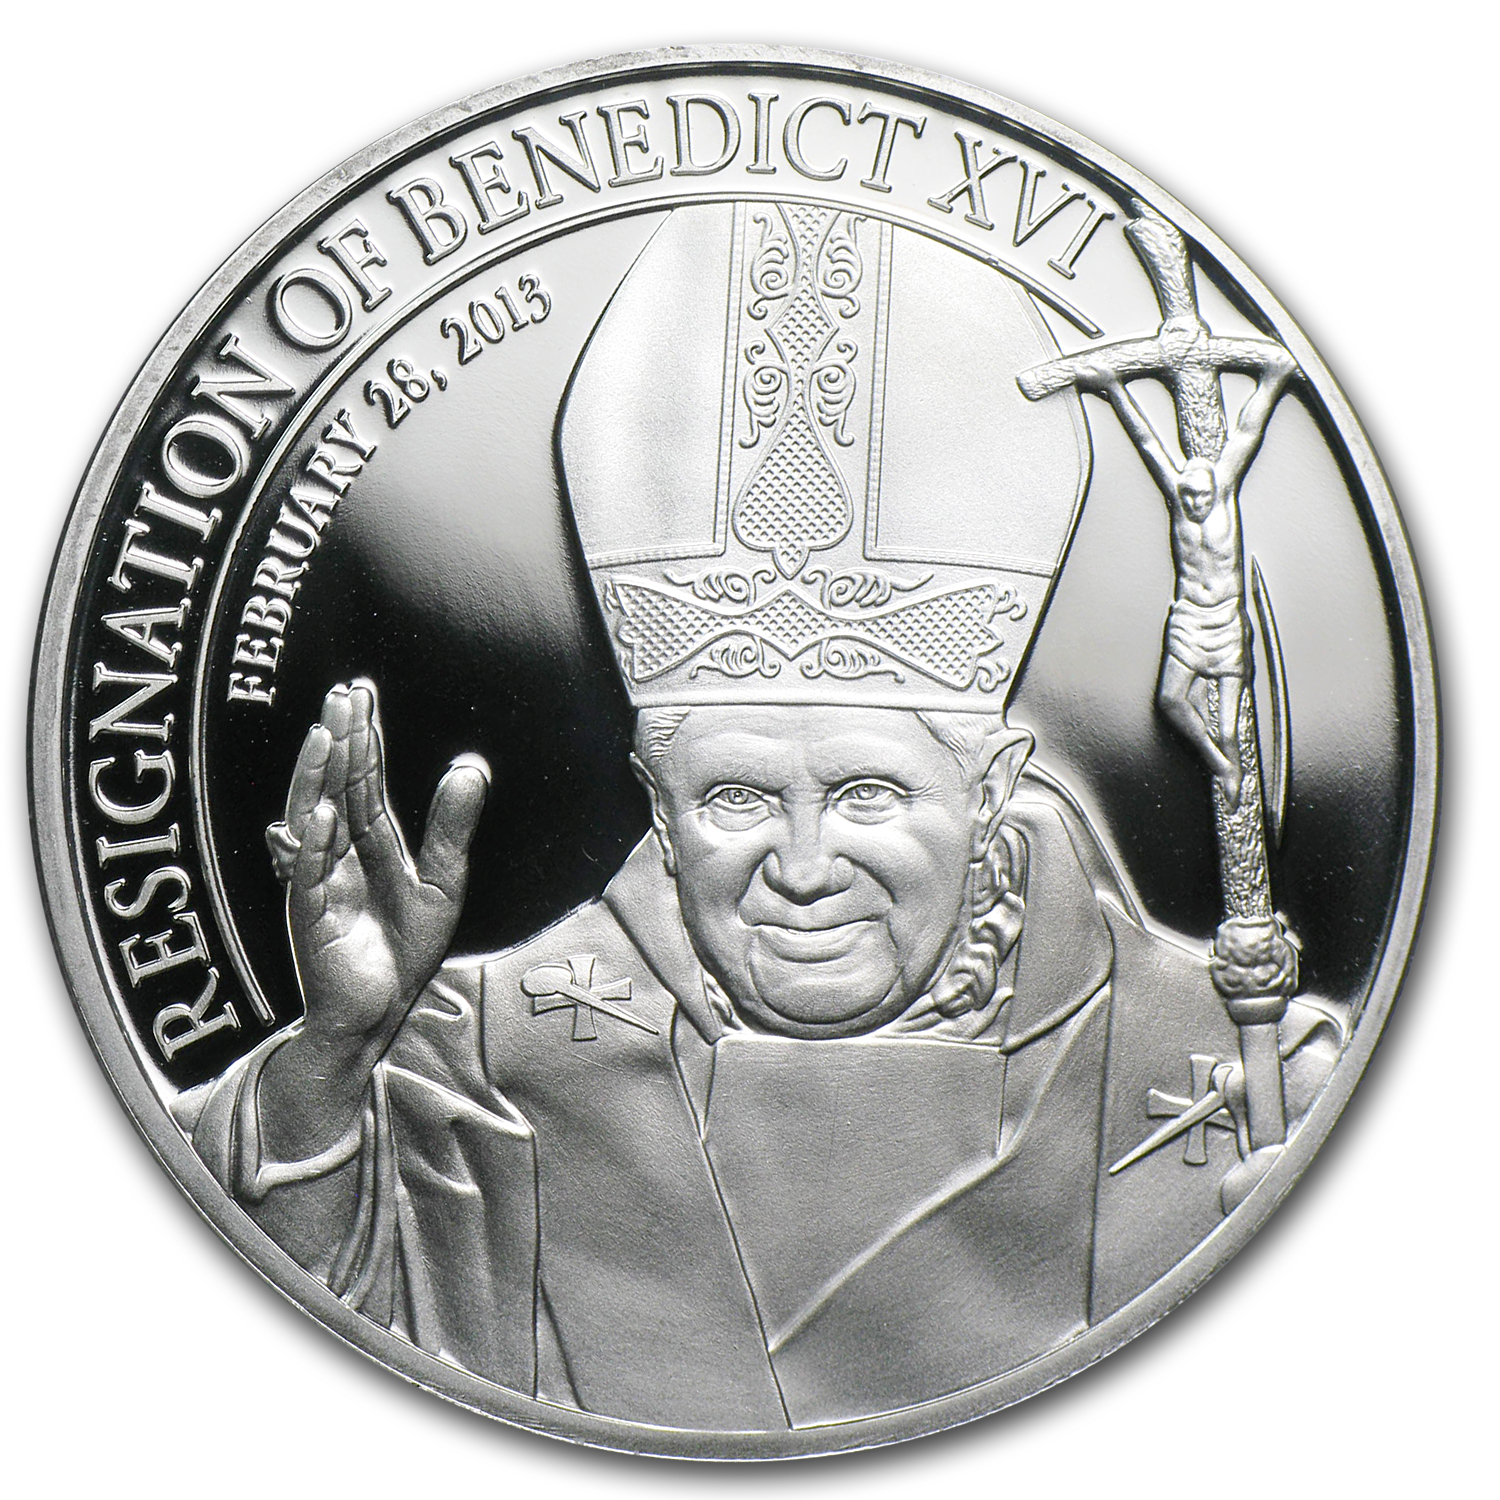 Cook Islands 2013 Silver $5 Resignation of Pope Benedict XVI